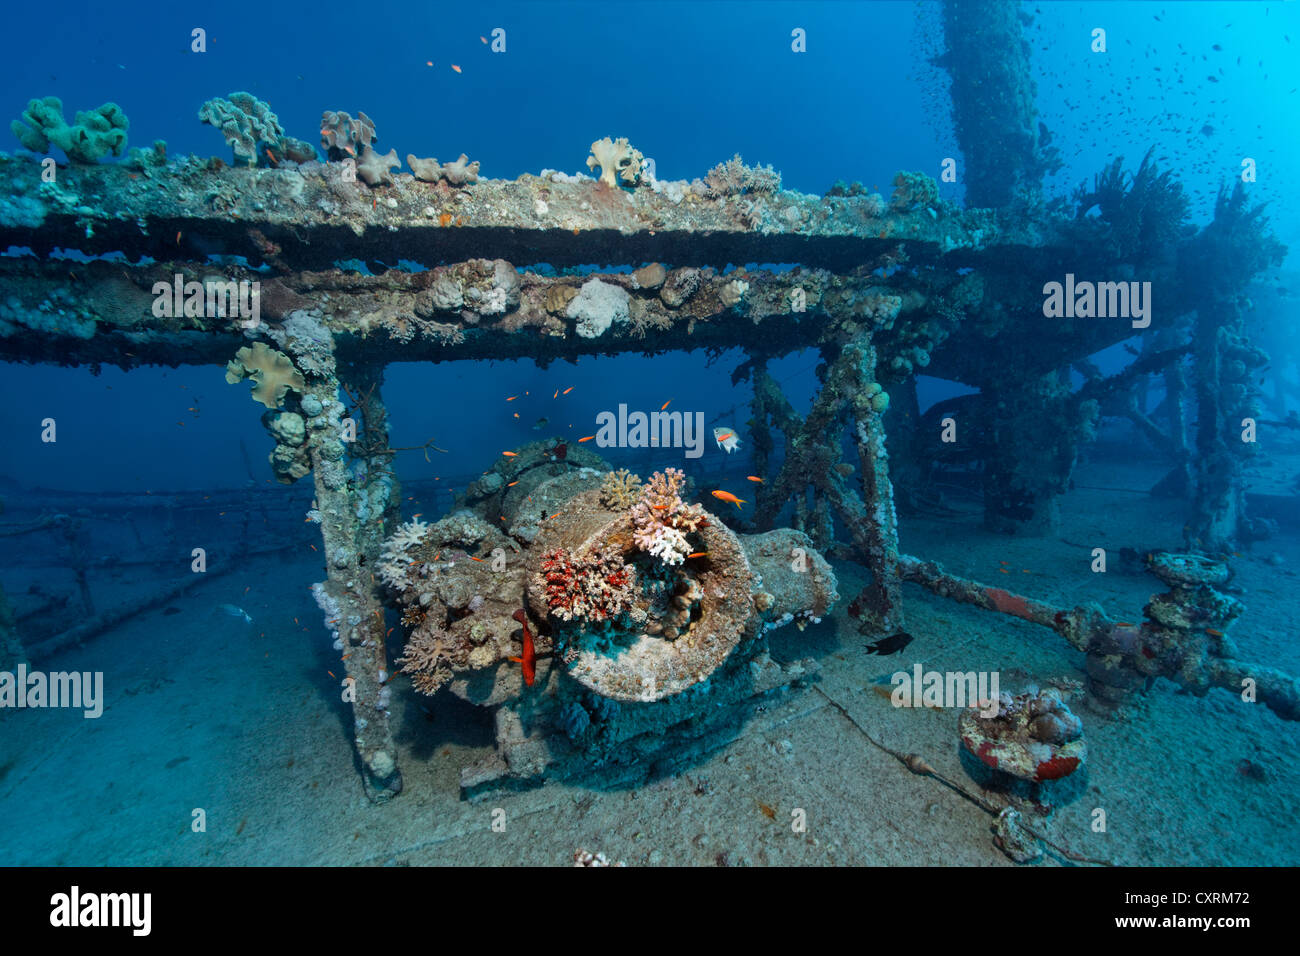 Superstructure, winch, mast, shipwreck, tanker, S.S. Turbo, build 1912, sank on 4/4/1942 during World War II - Stock Image